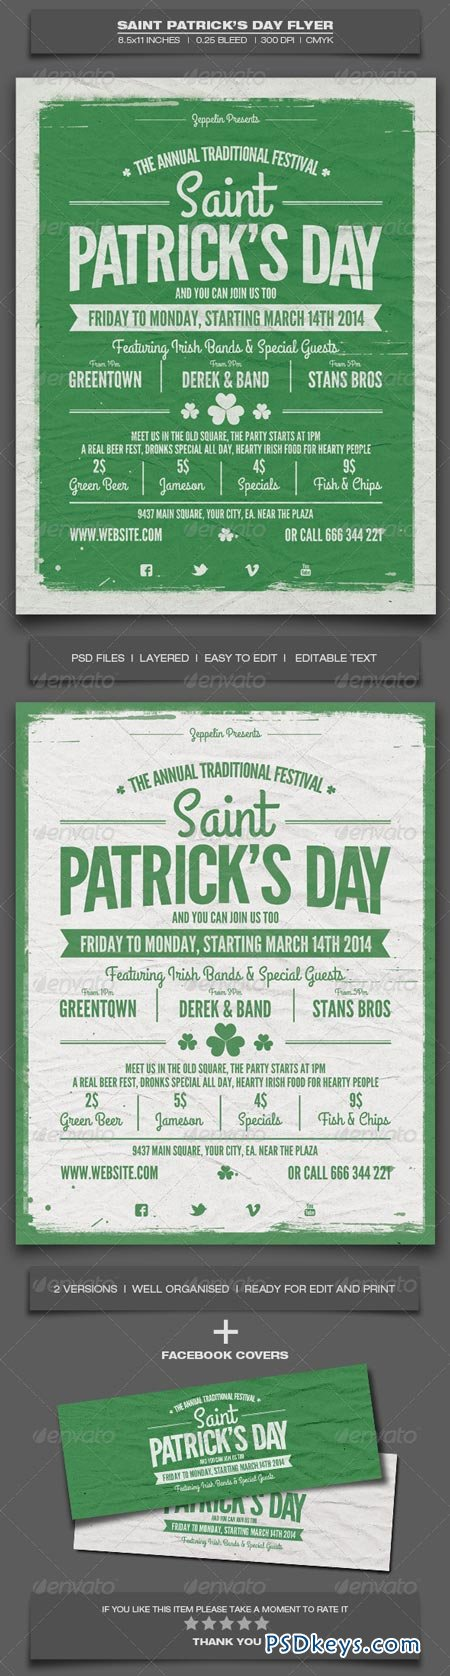 Saint Patrick's Day Flyer Template 6952780